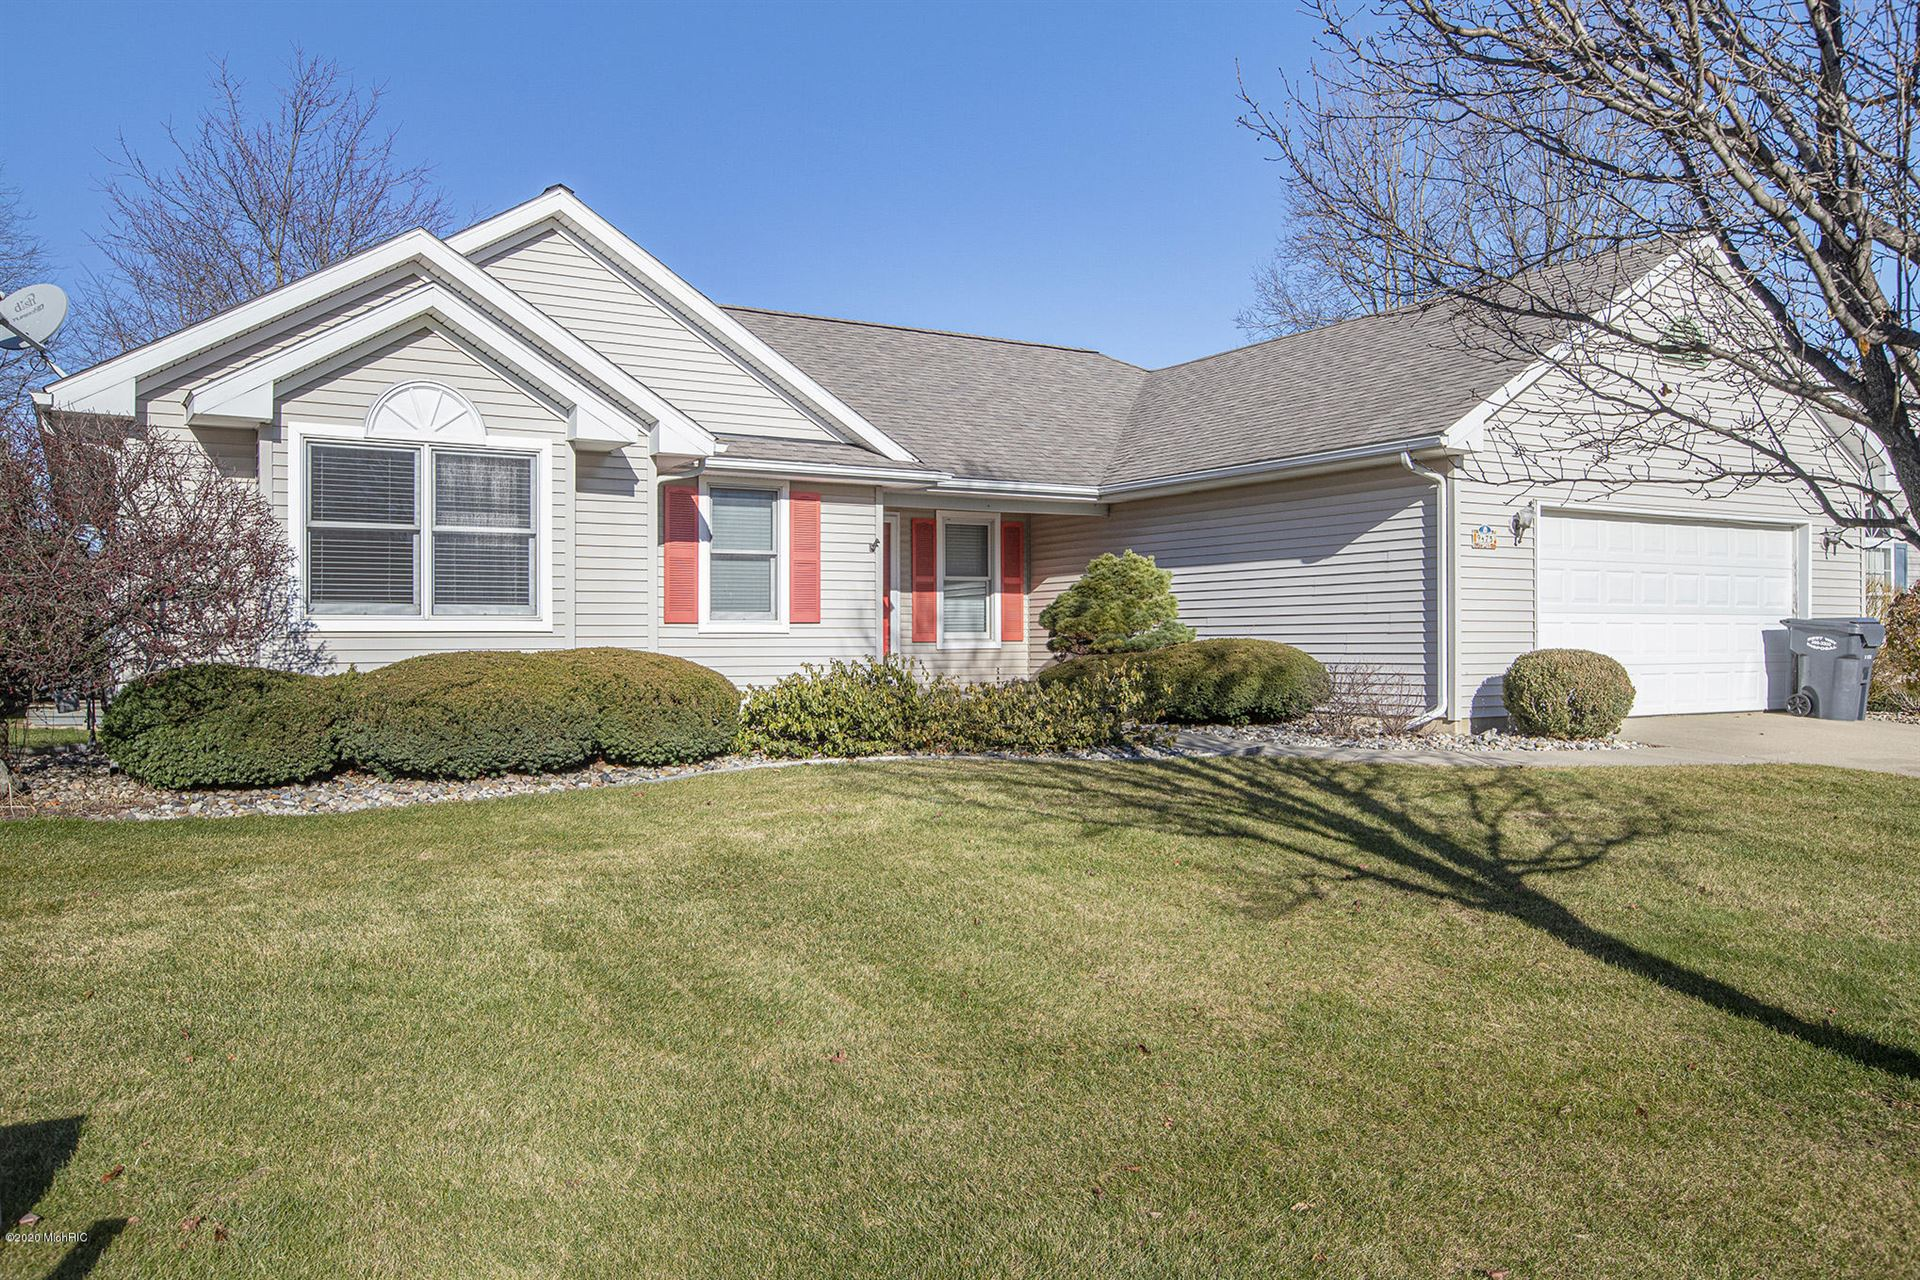 9475 Richwood Avenue, Richland, MI 49083 - MLS#: 20049459